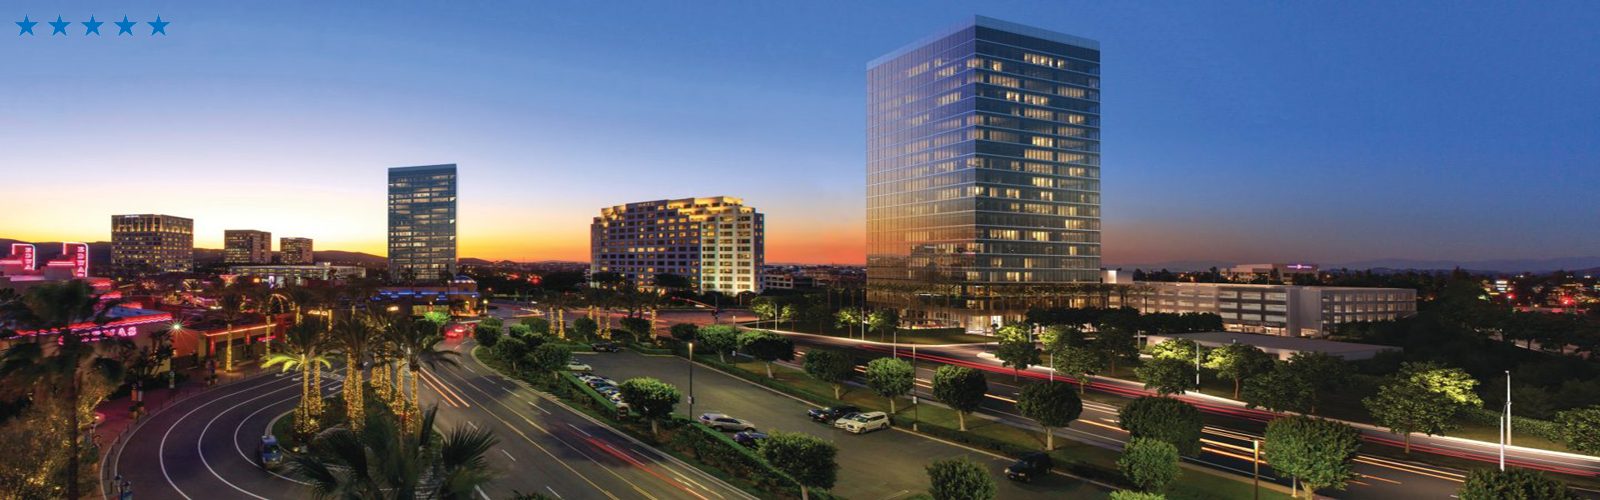 Since 1994 our company headquarters have been in the heart of Orange County, Irvine CA